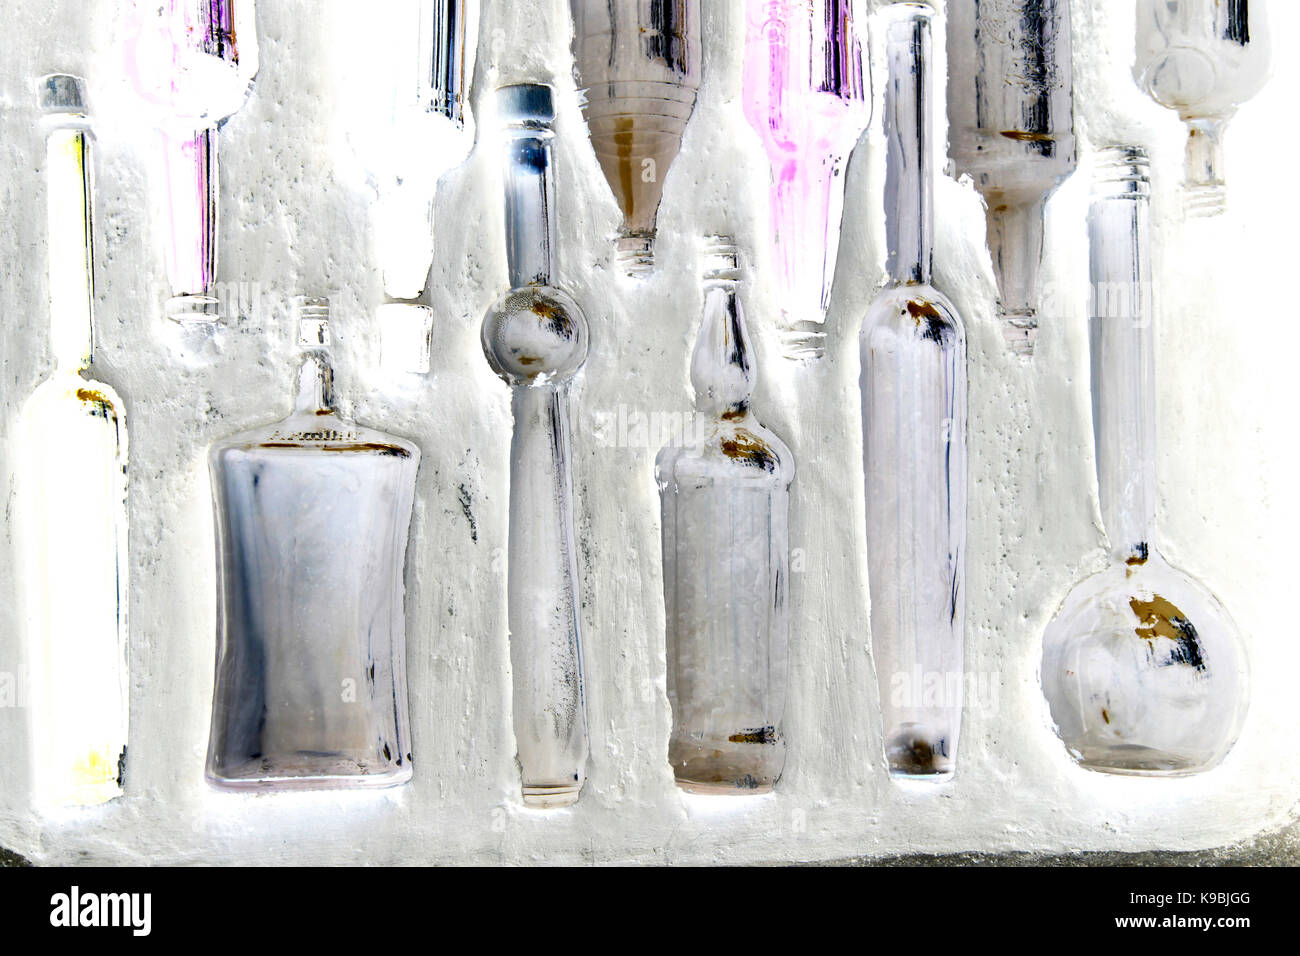 Bottles in a wall - glass bottles embedded in a white washed wall - Stock Image